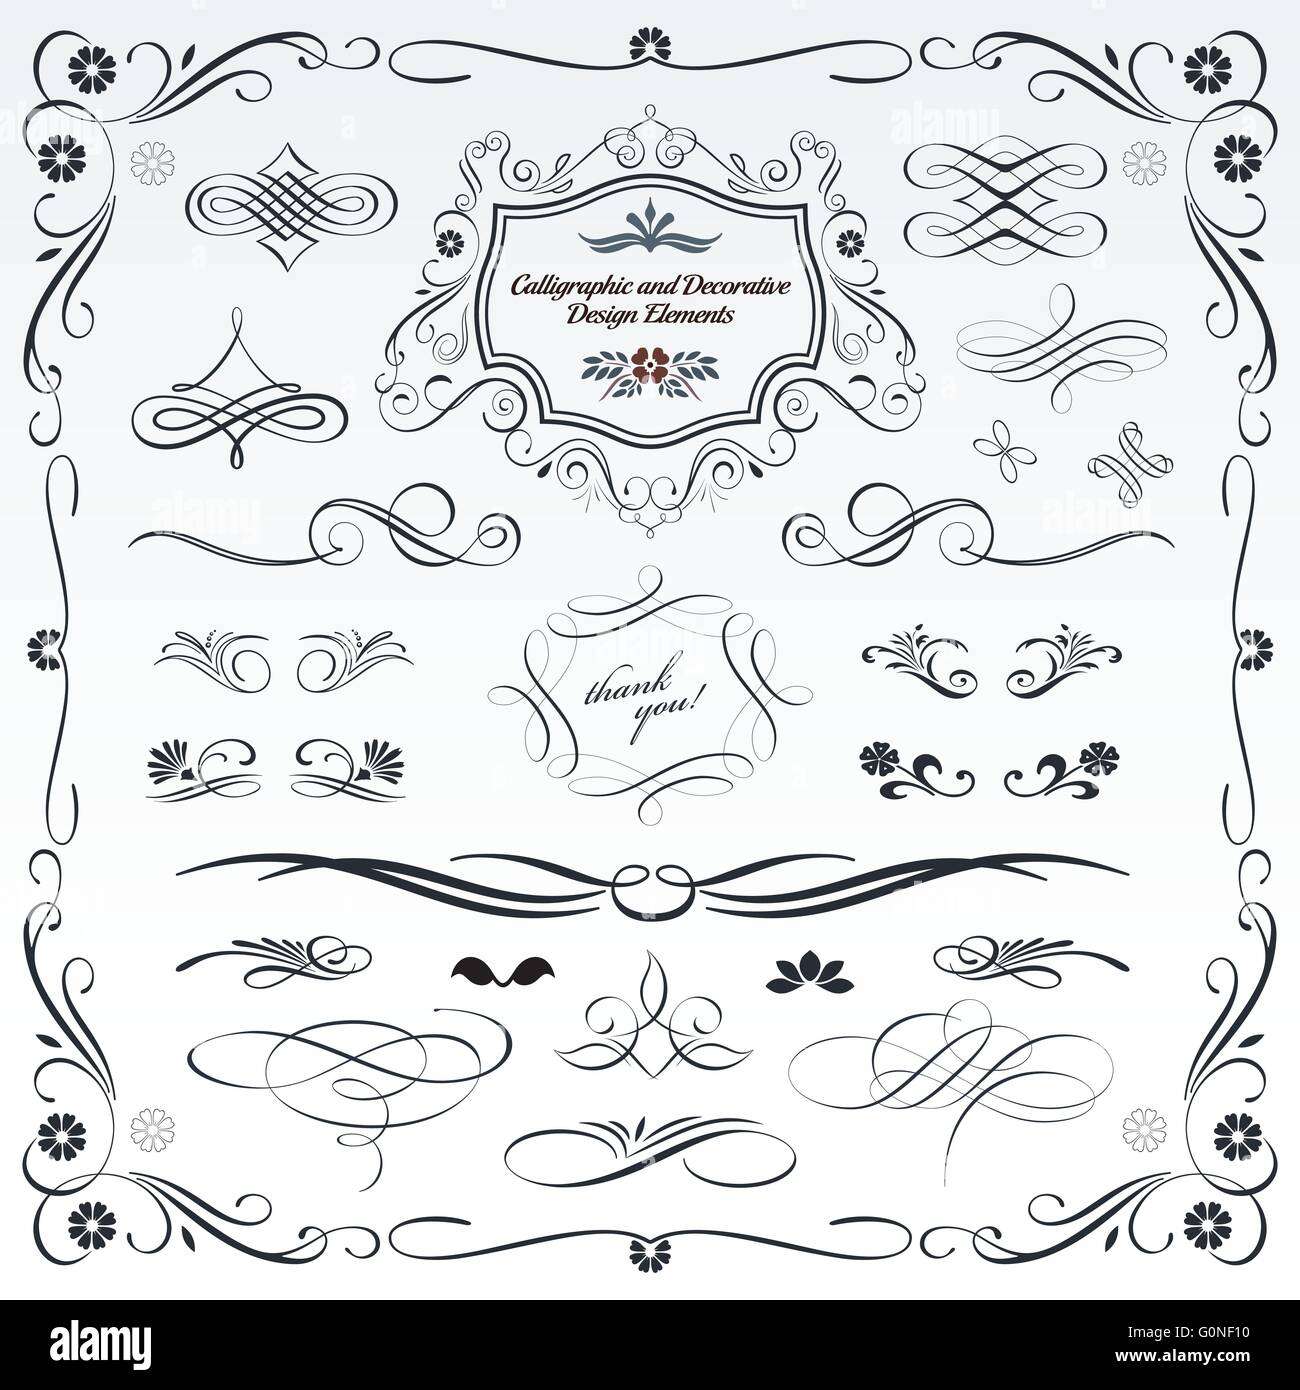 Collection of calligraphic and decorative design patterns, embellishments in vector format. - Stock Image